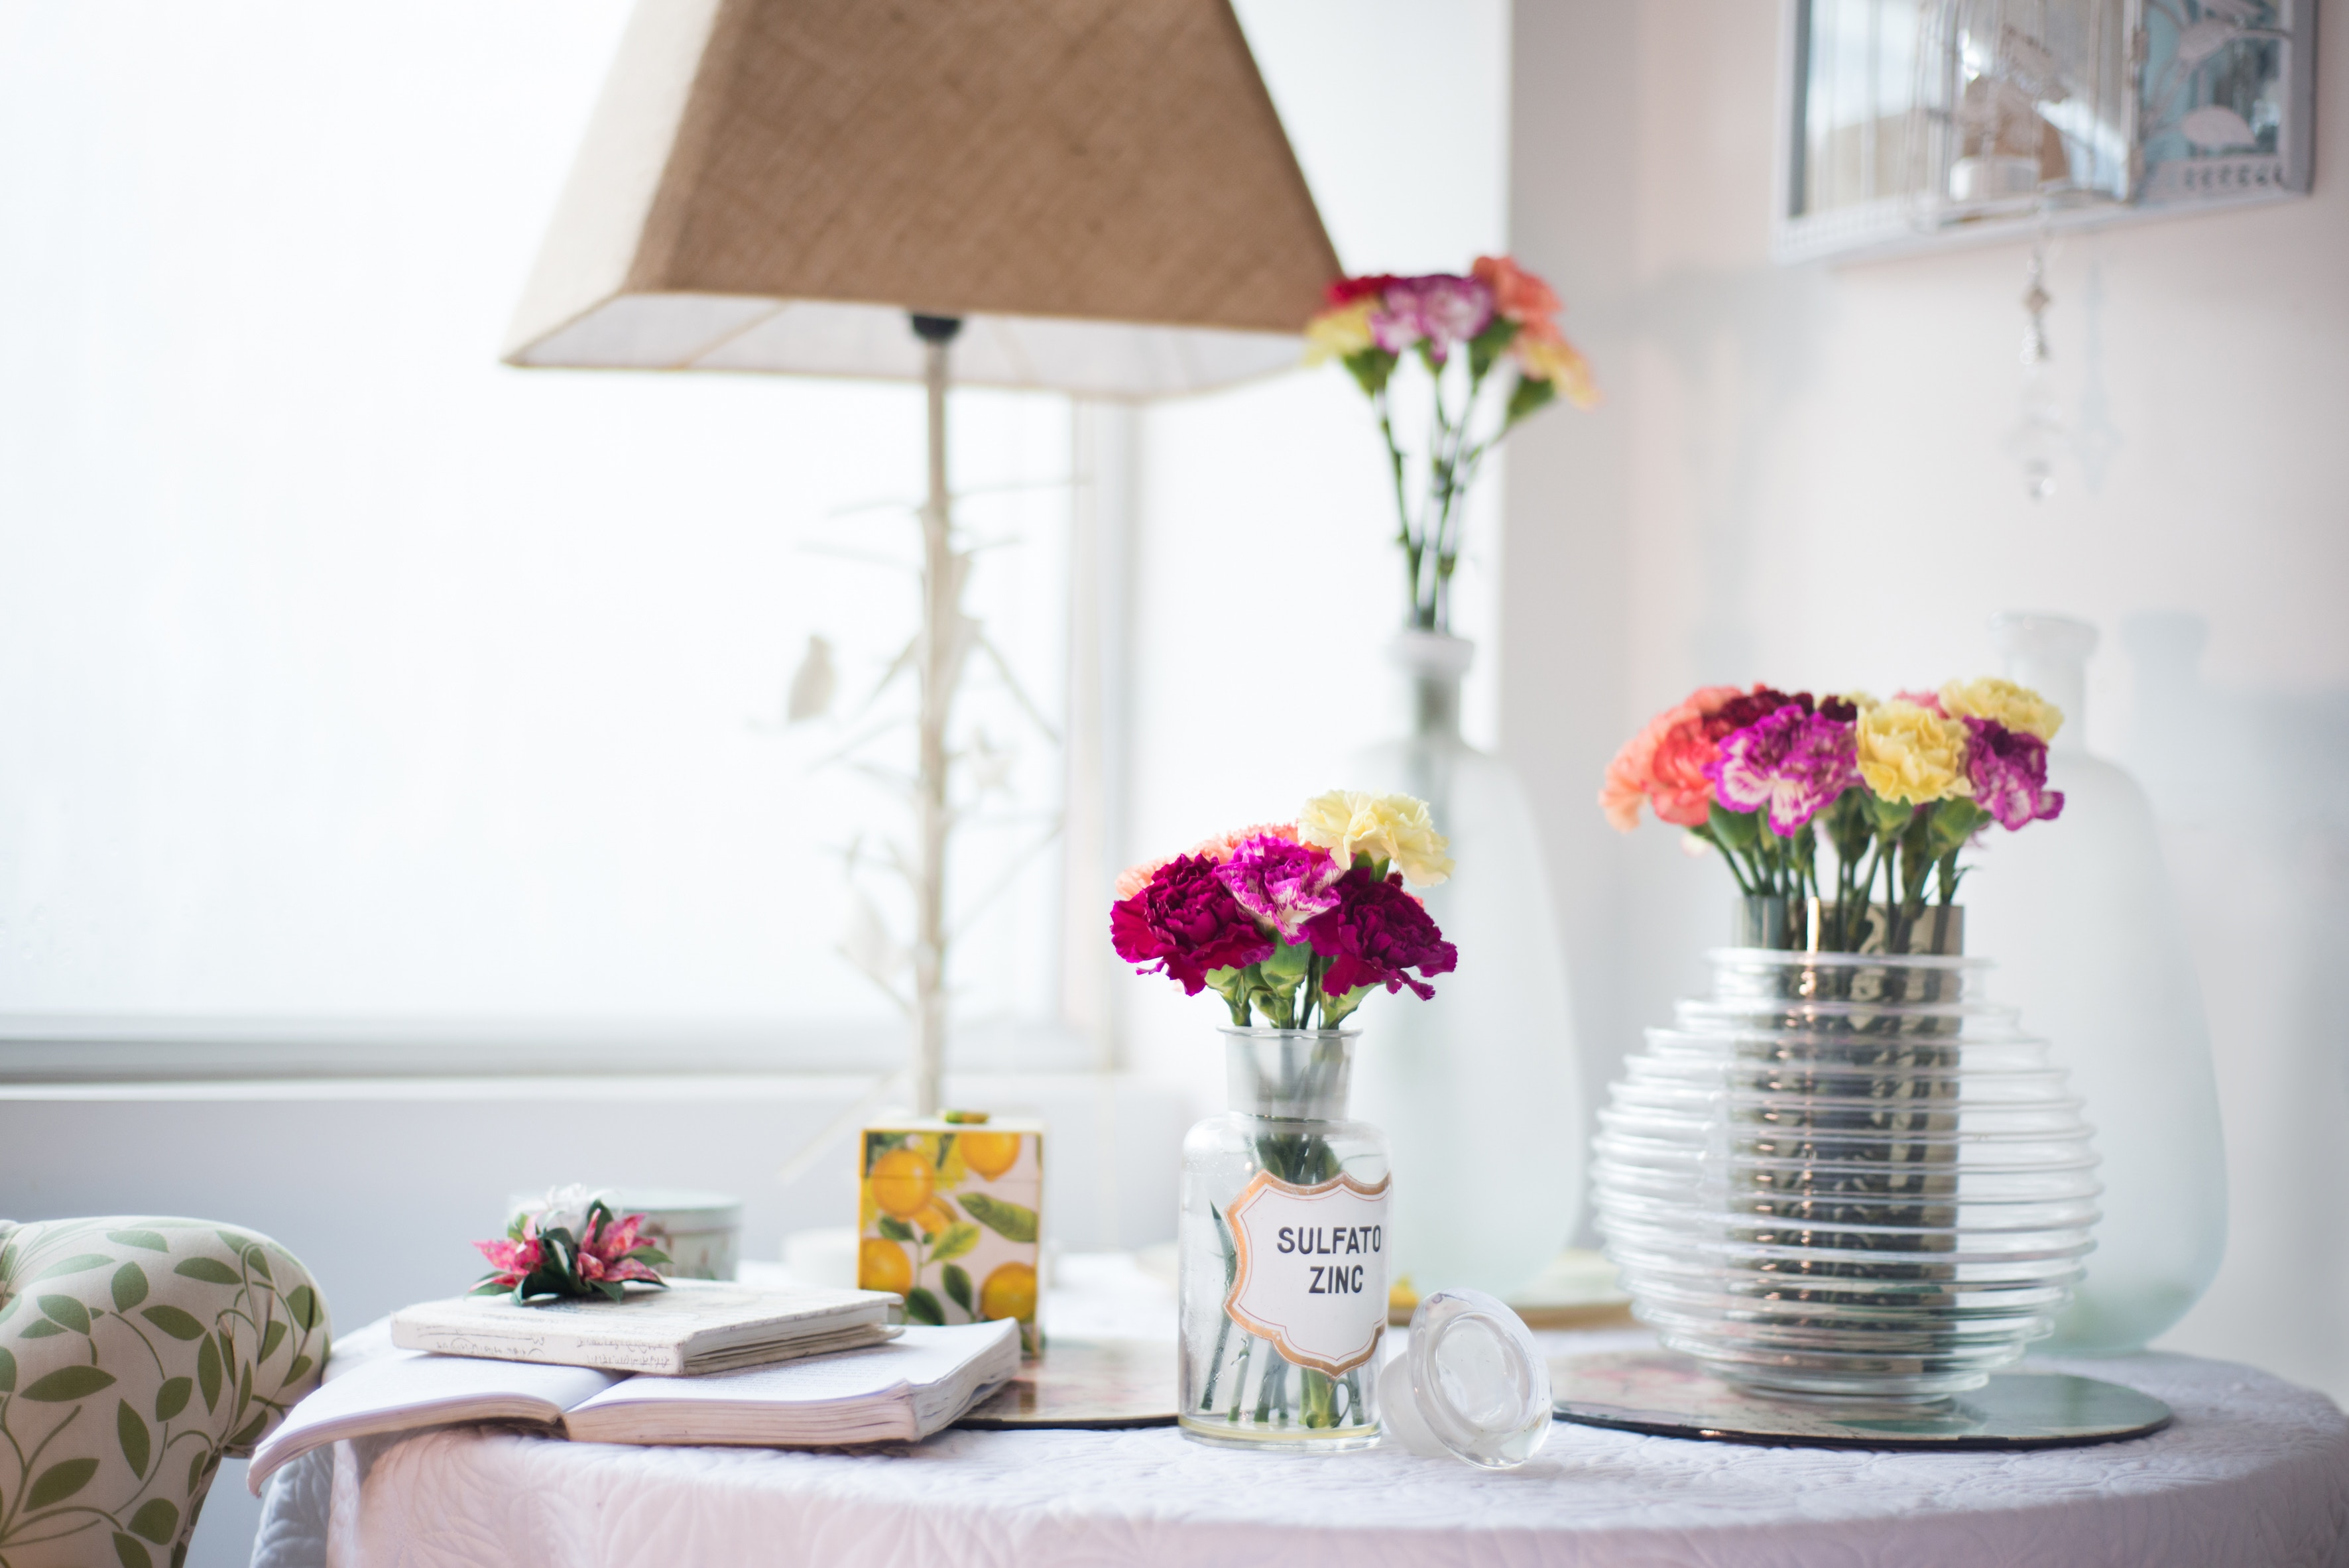 flowers on living room table Photo by Floreser on Unsplash